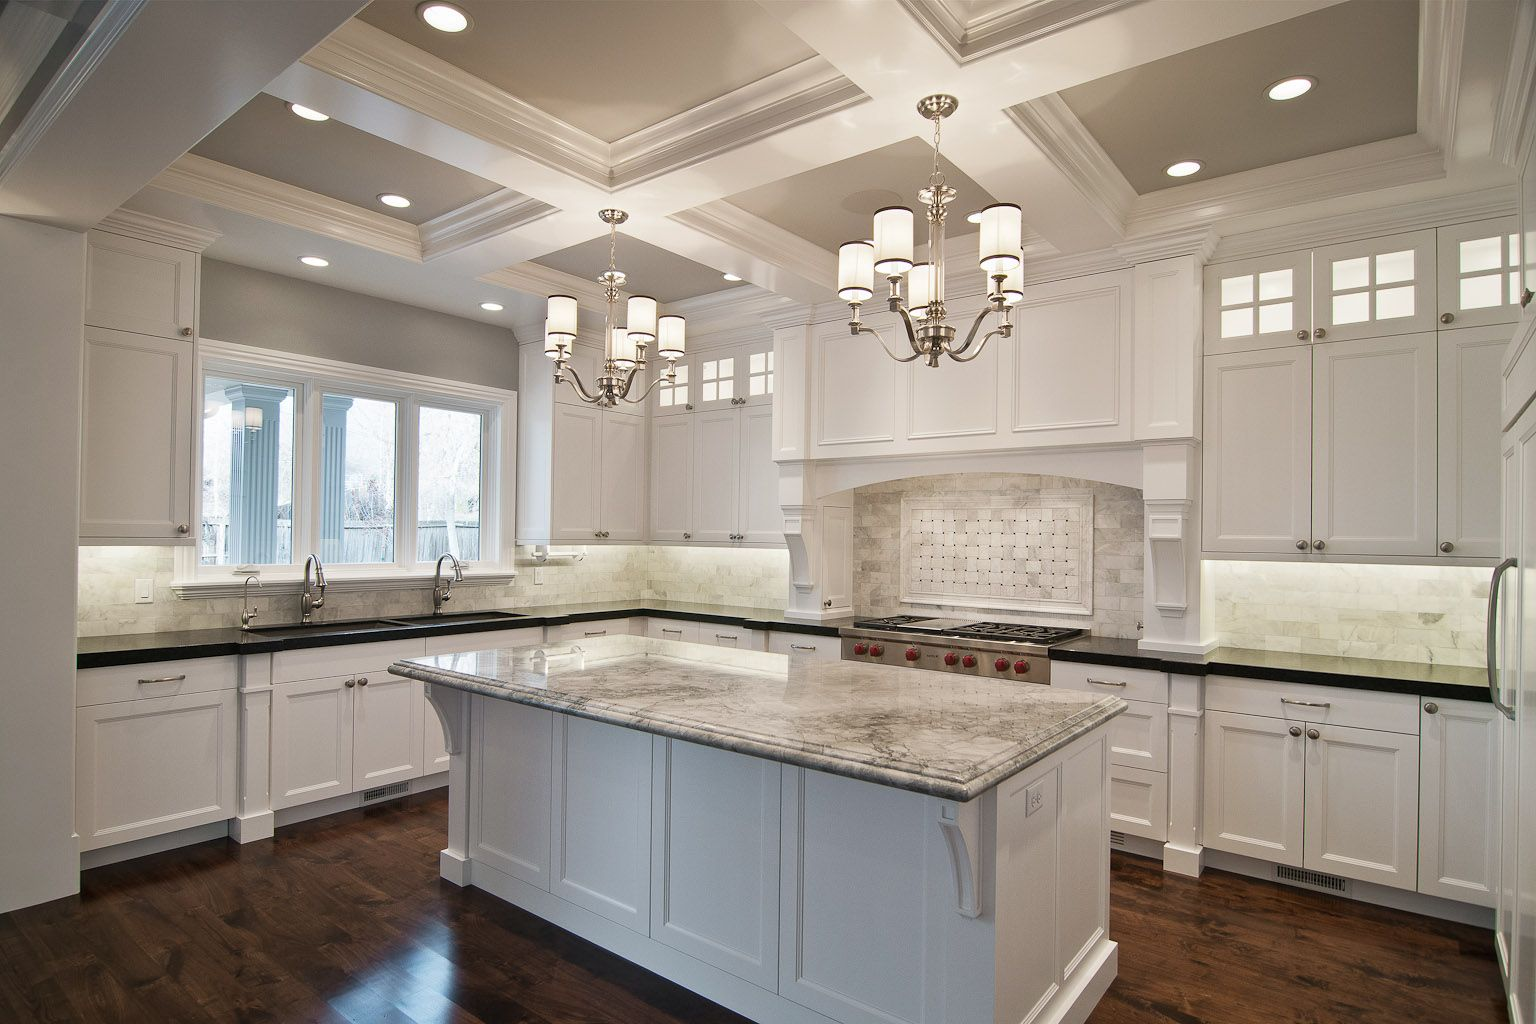 Some day, I dream of a kitchen with a middle island and